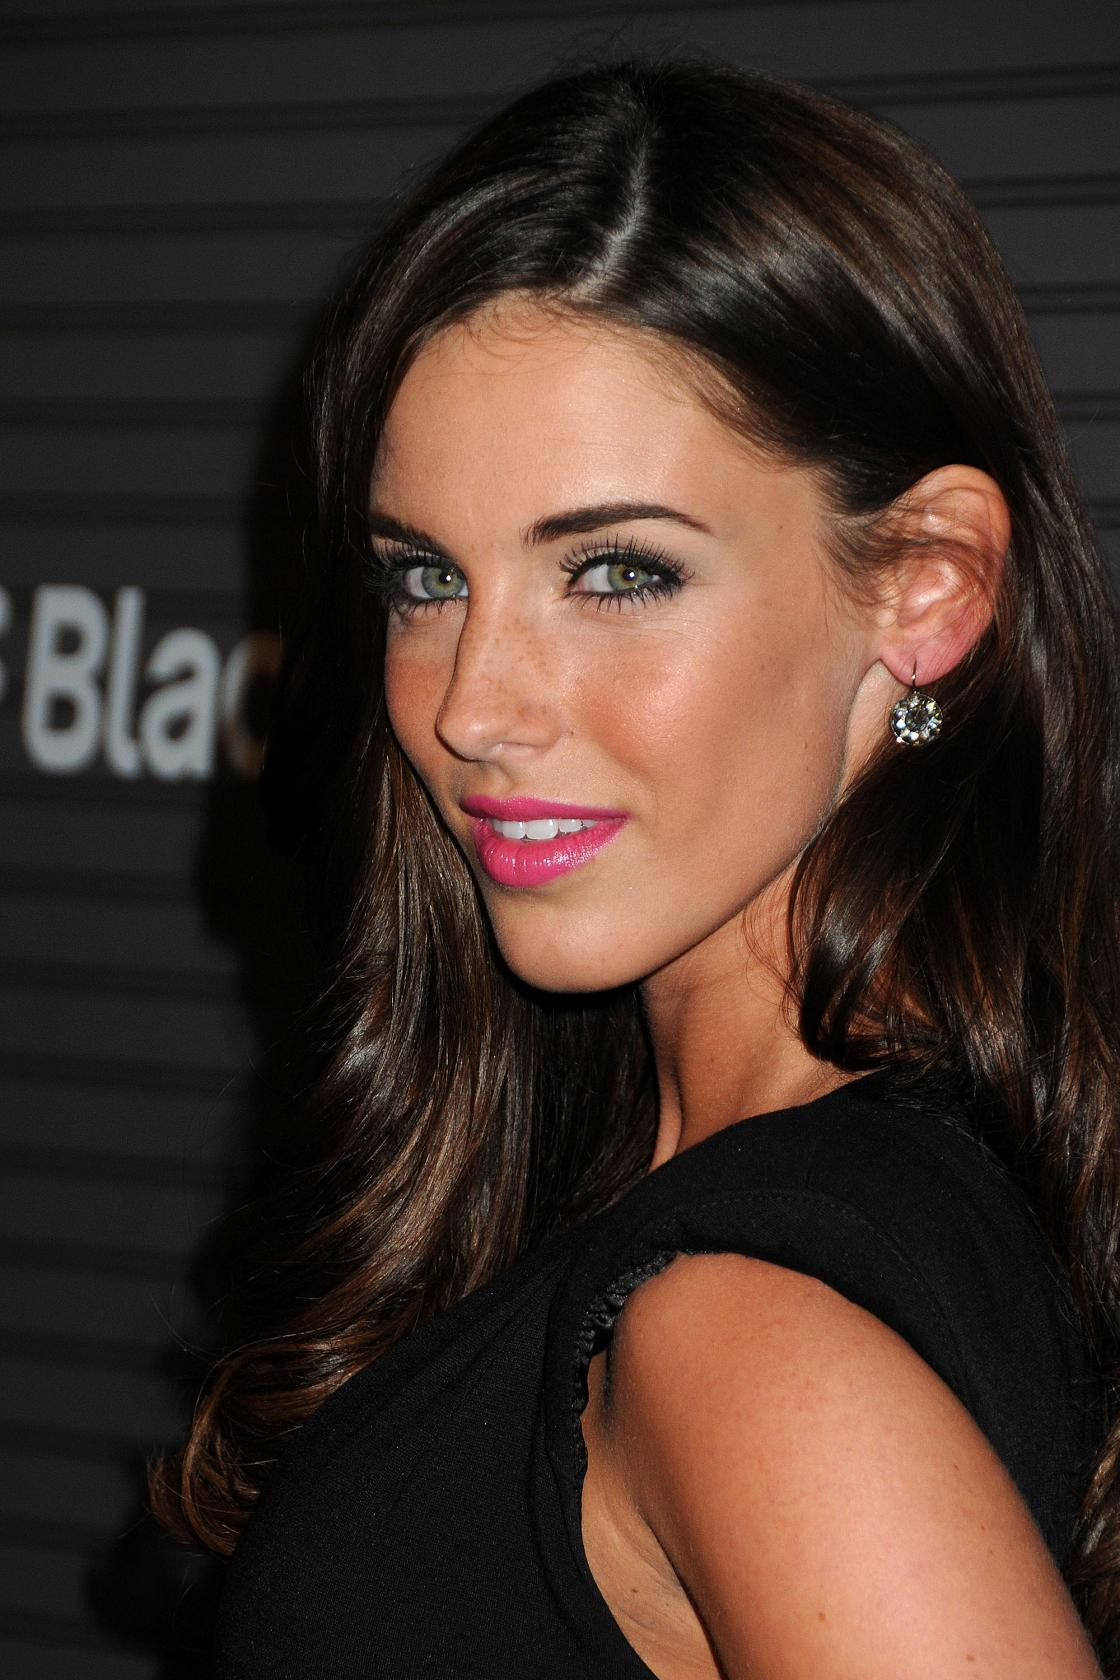 Jessica Lowndes naked (91 photos), hacked Sexy, Instagram, in bikini 2018